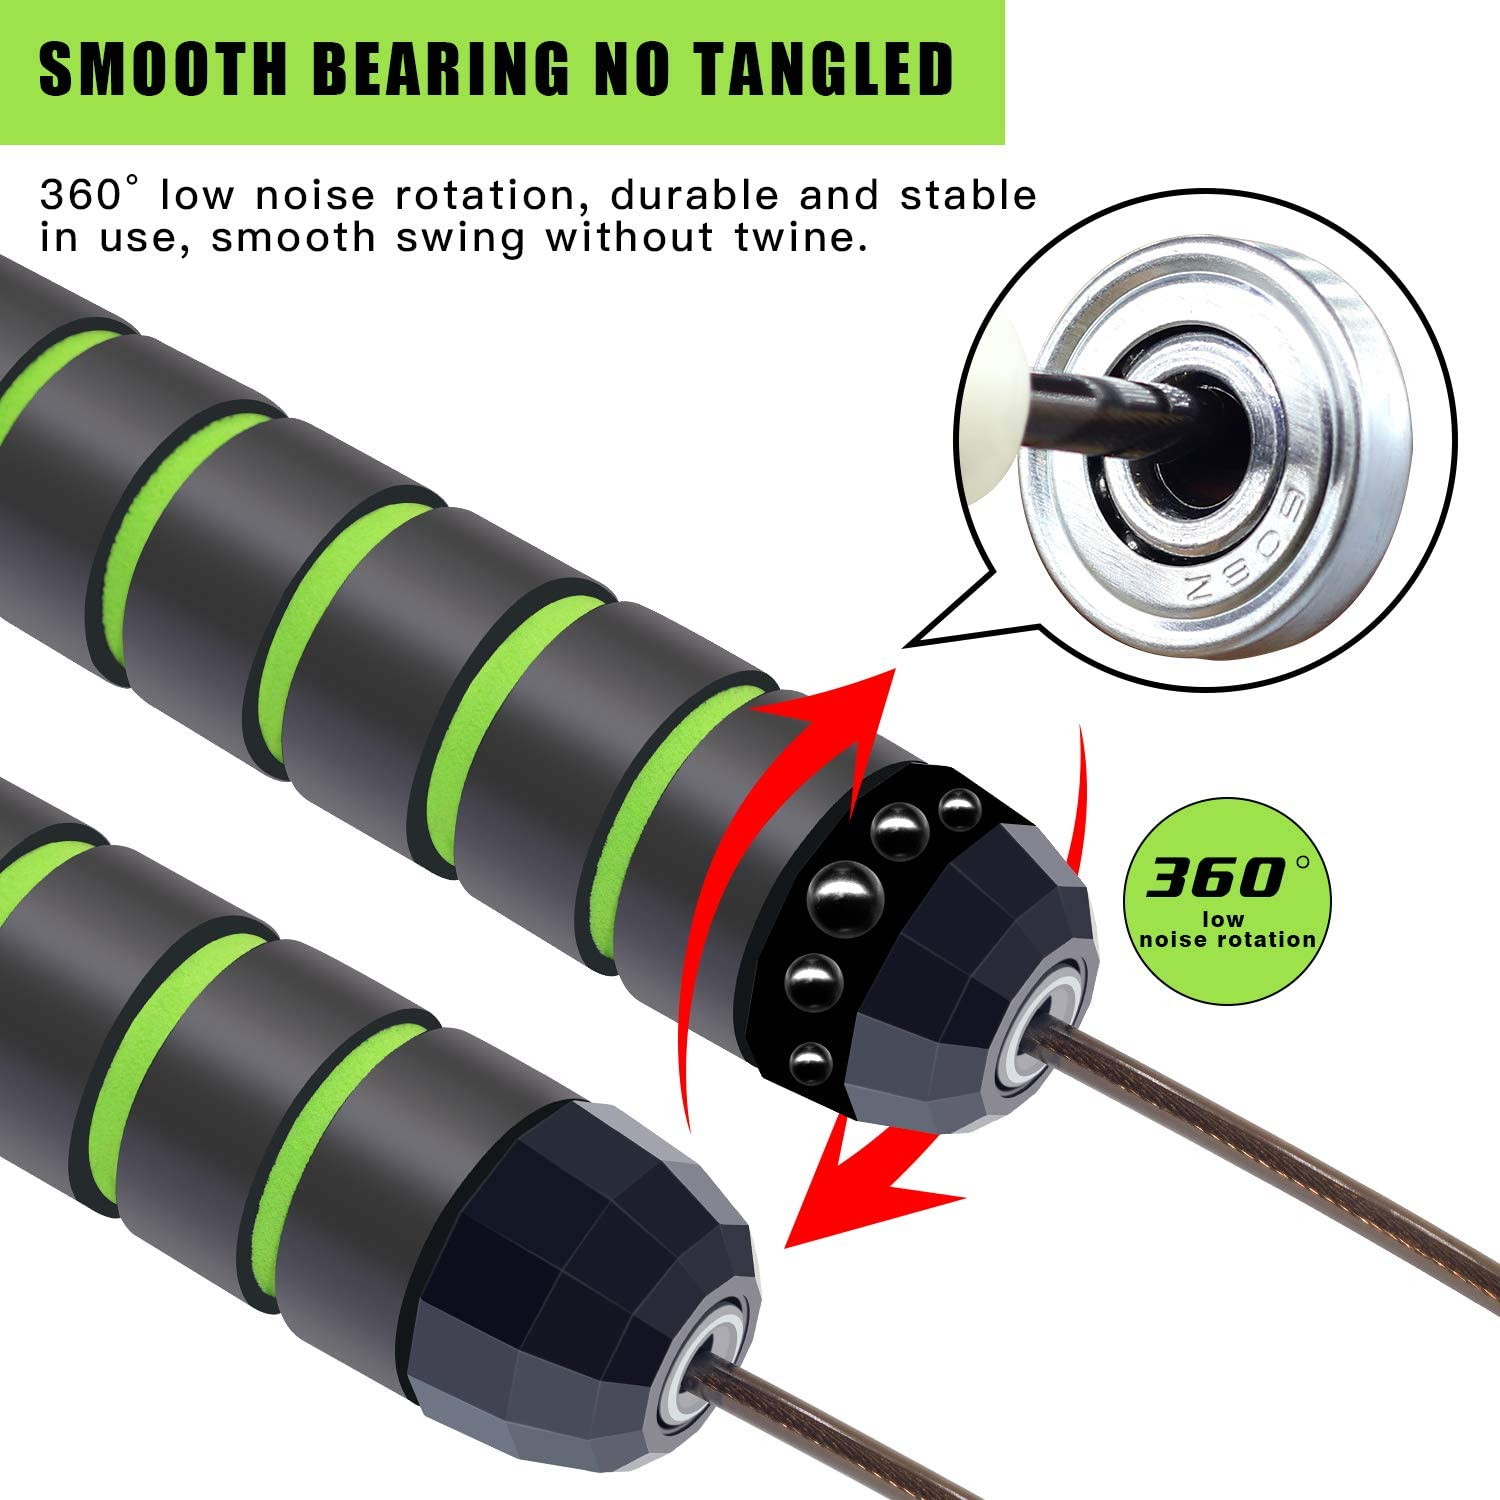 Women Men Kids and All Skill Levels Boxing MMA Kamileo Speed Jump Rope Adjustable Jump Rope Suitable for Workout Exercise Fitness Training